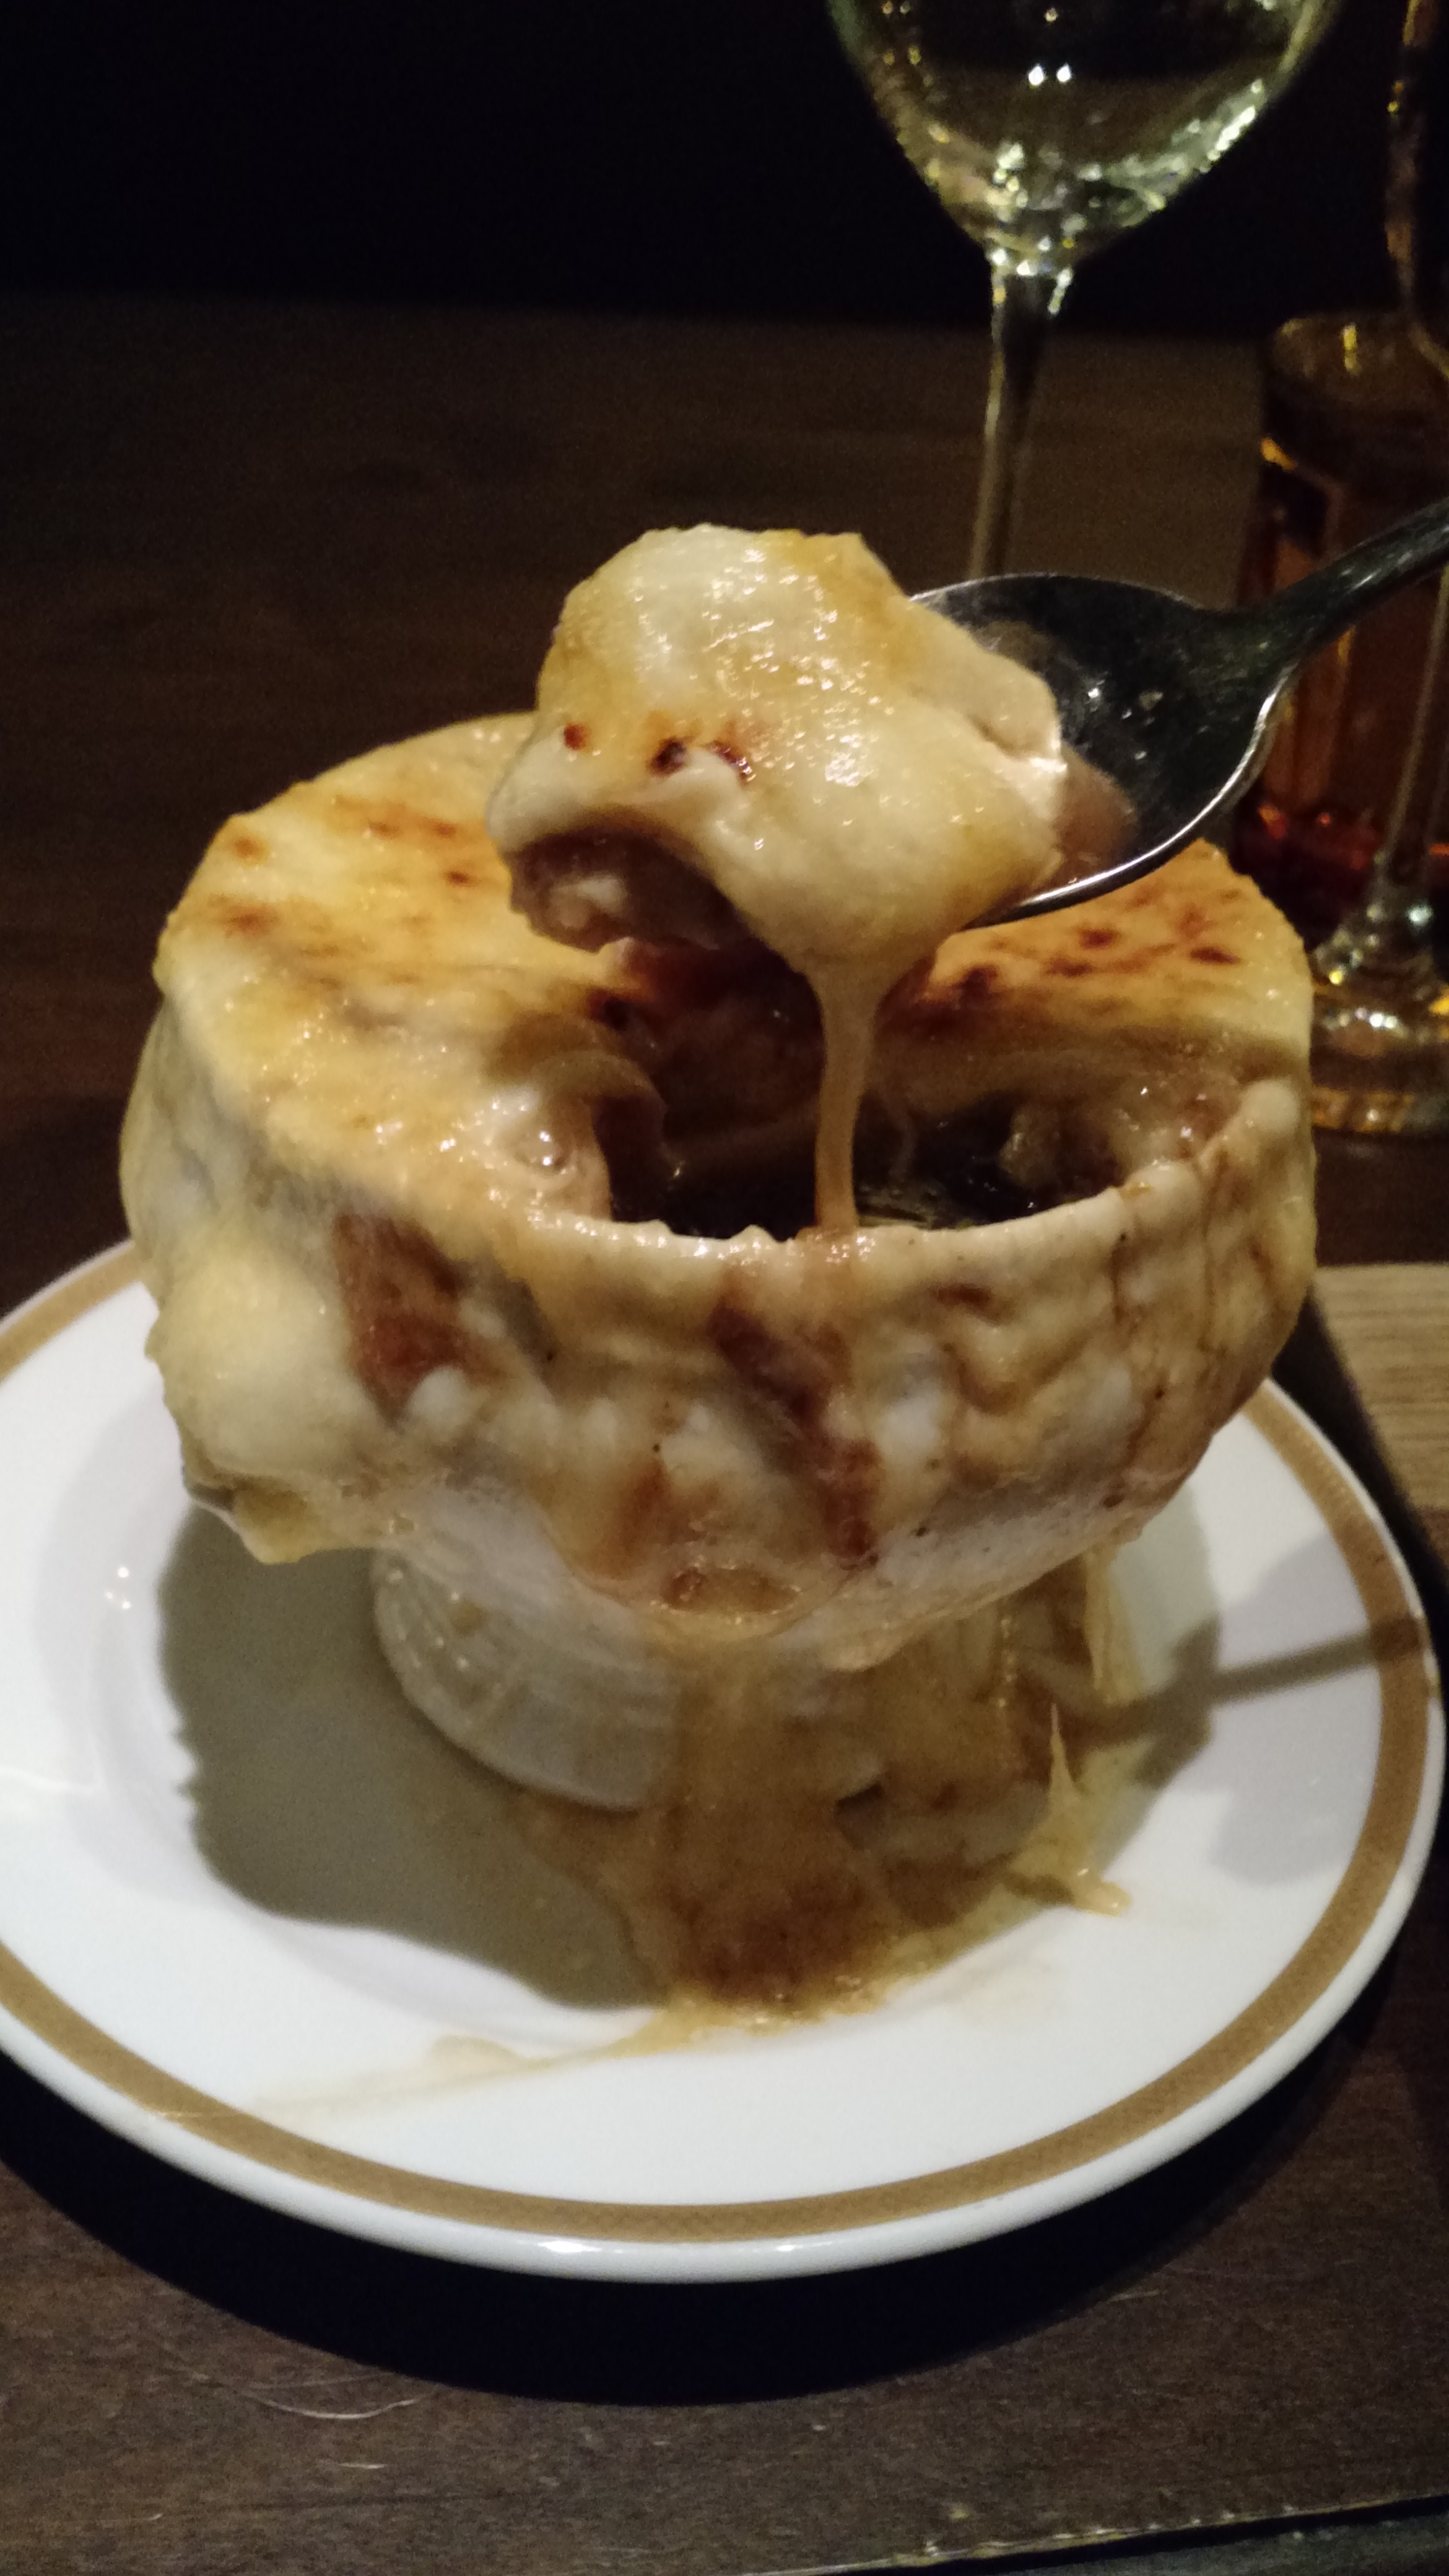 DAY 3 DINNER RESTAURANT BARDOT FRENCH ONION SOUP